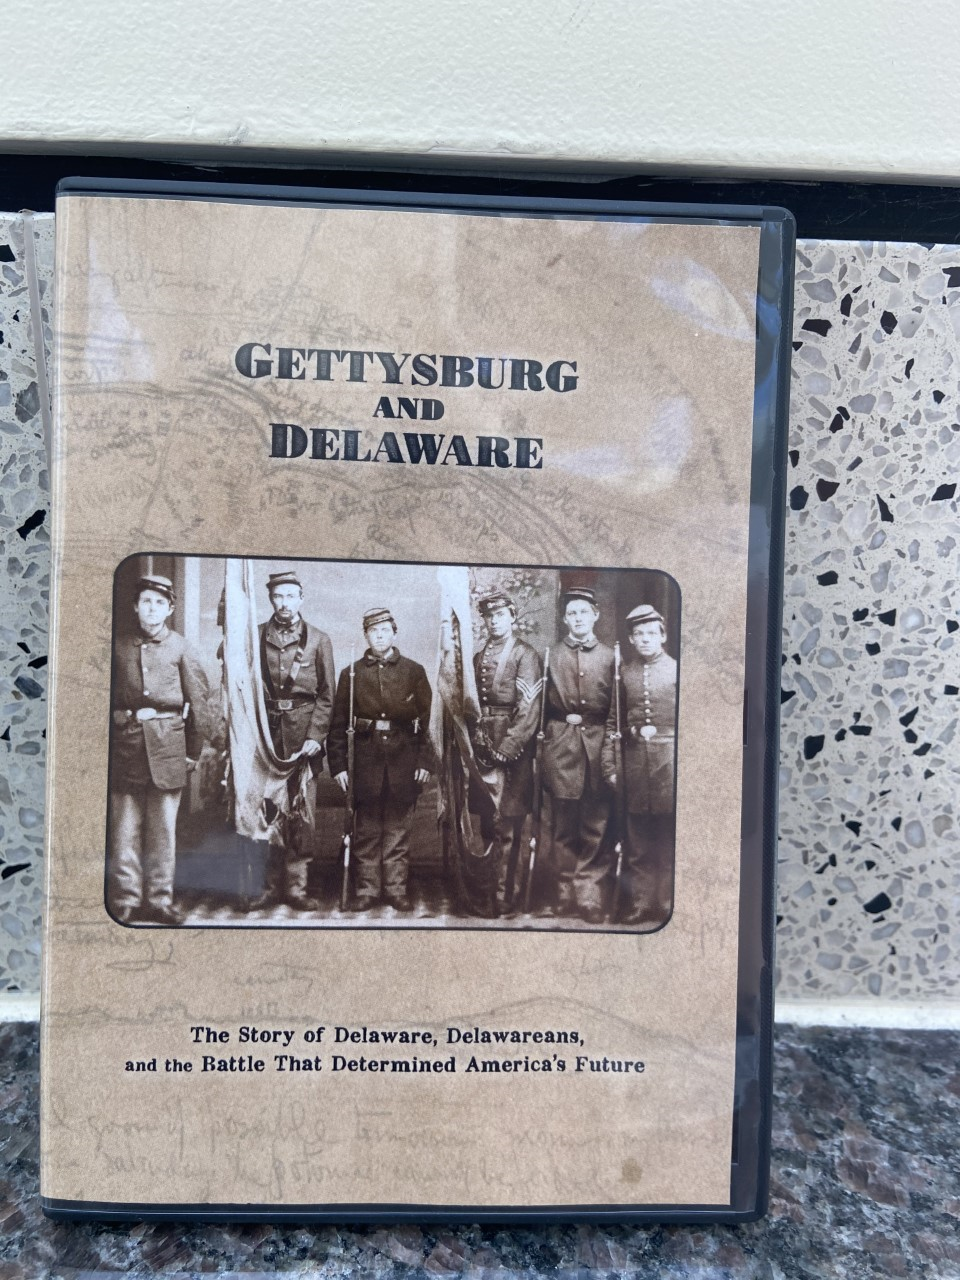 Gettysburg and Delaware: the Story of Delaware, Delawareans, and the Battle that Determined America's Future, DVD, O.K. Video, 2020. Prices Relect the Cost of the DVD plus S&H of $3.